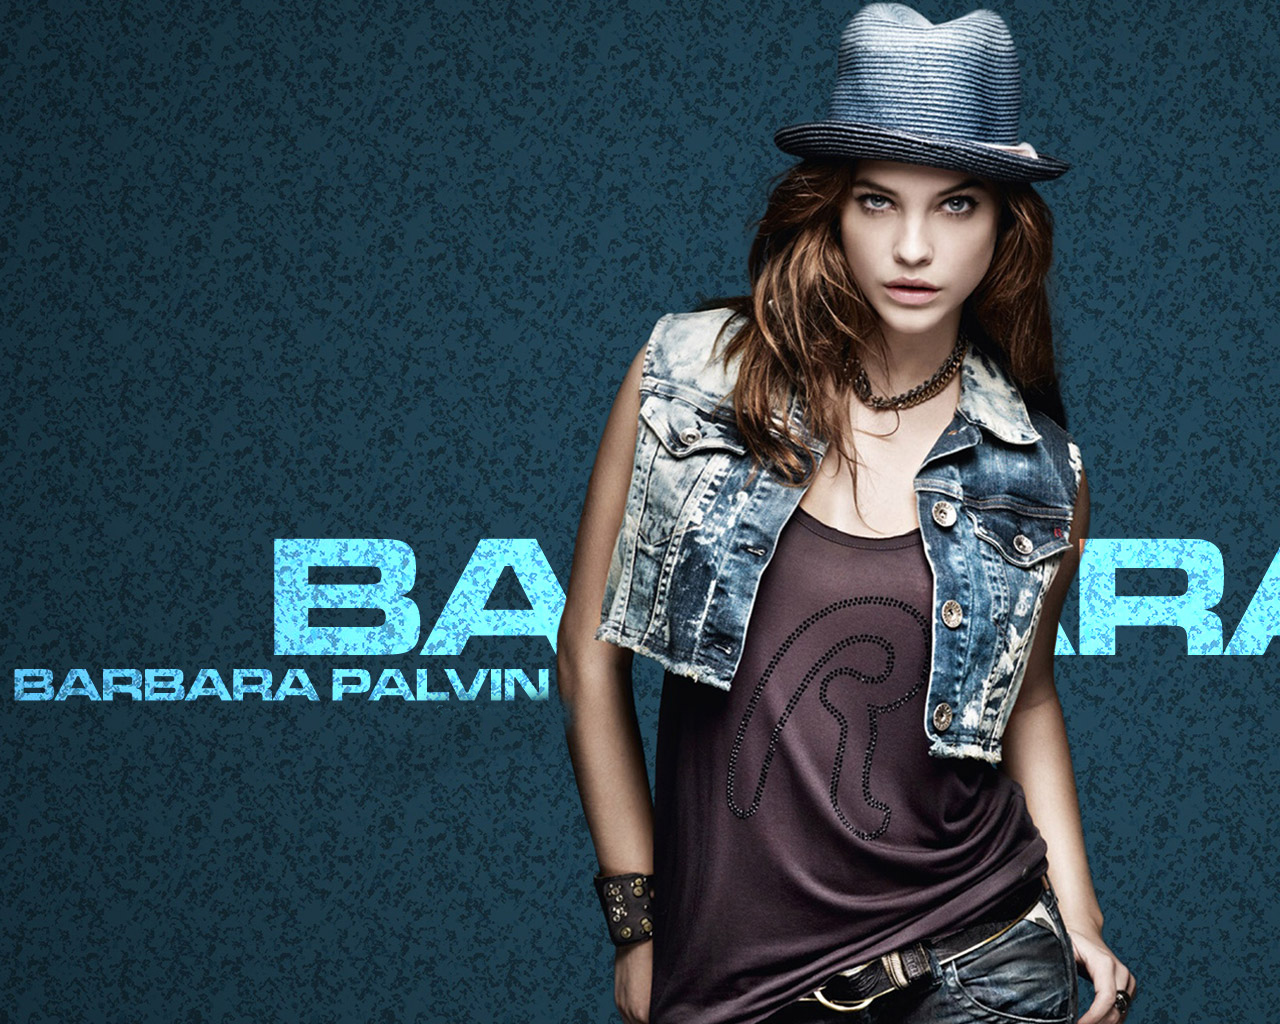 barbara palvin 14 wallpaper - photo #46